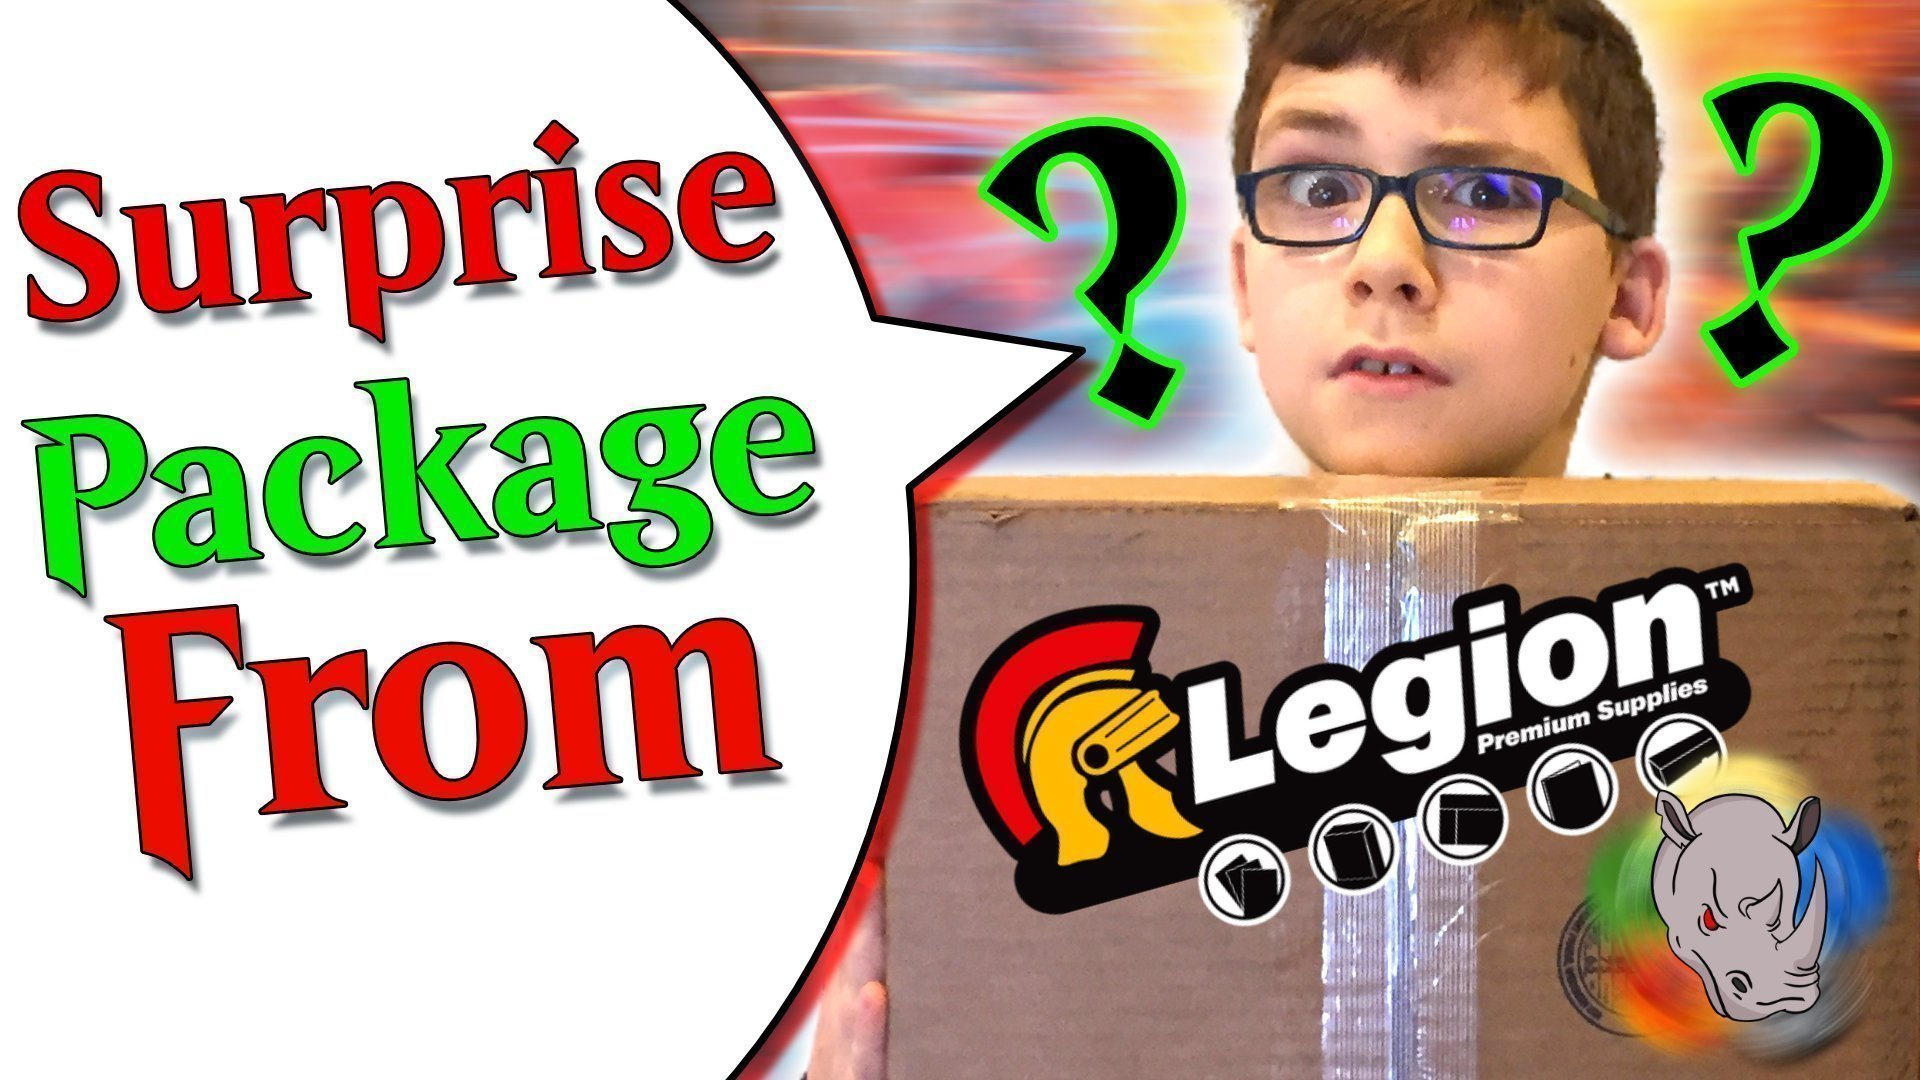 Surprise Package from Legion Supplies